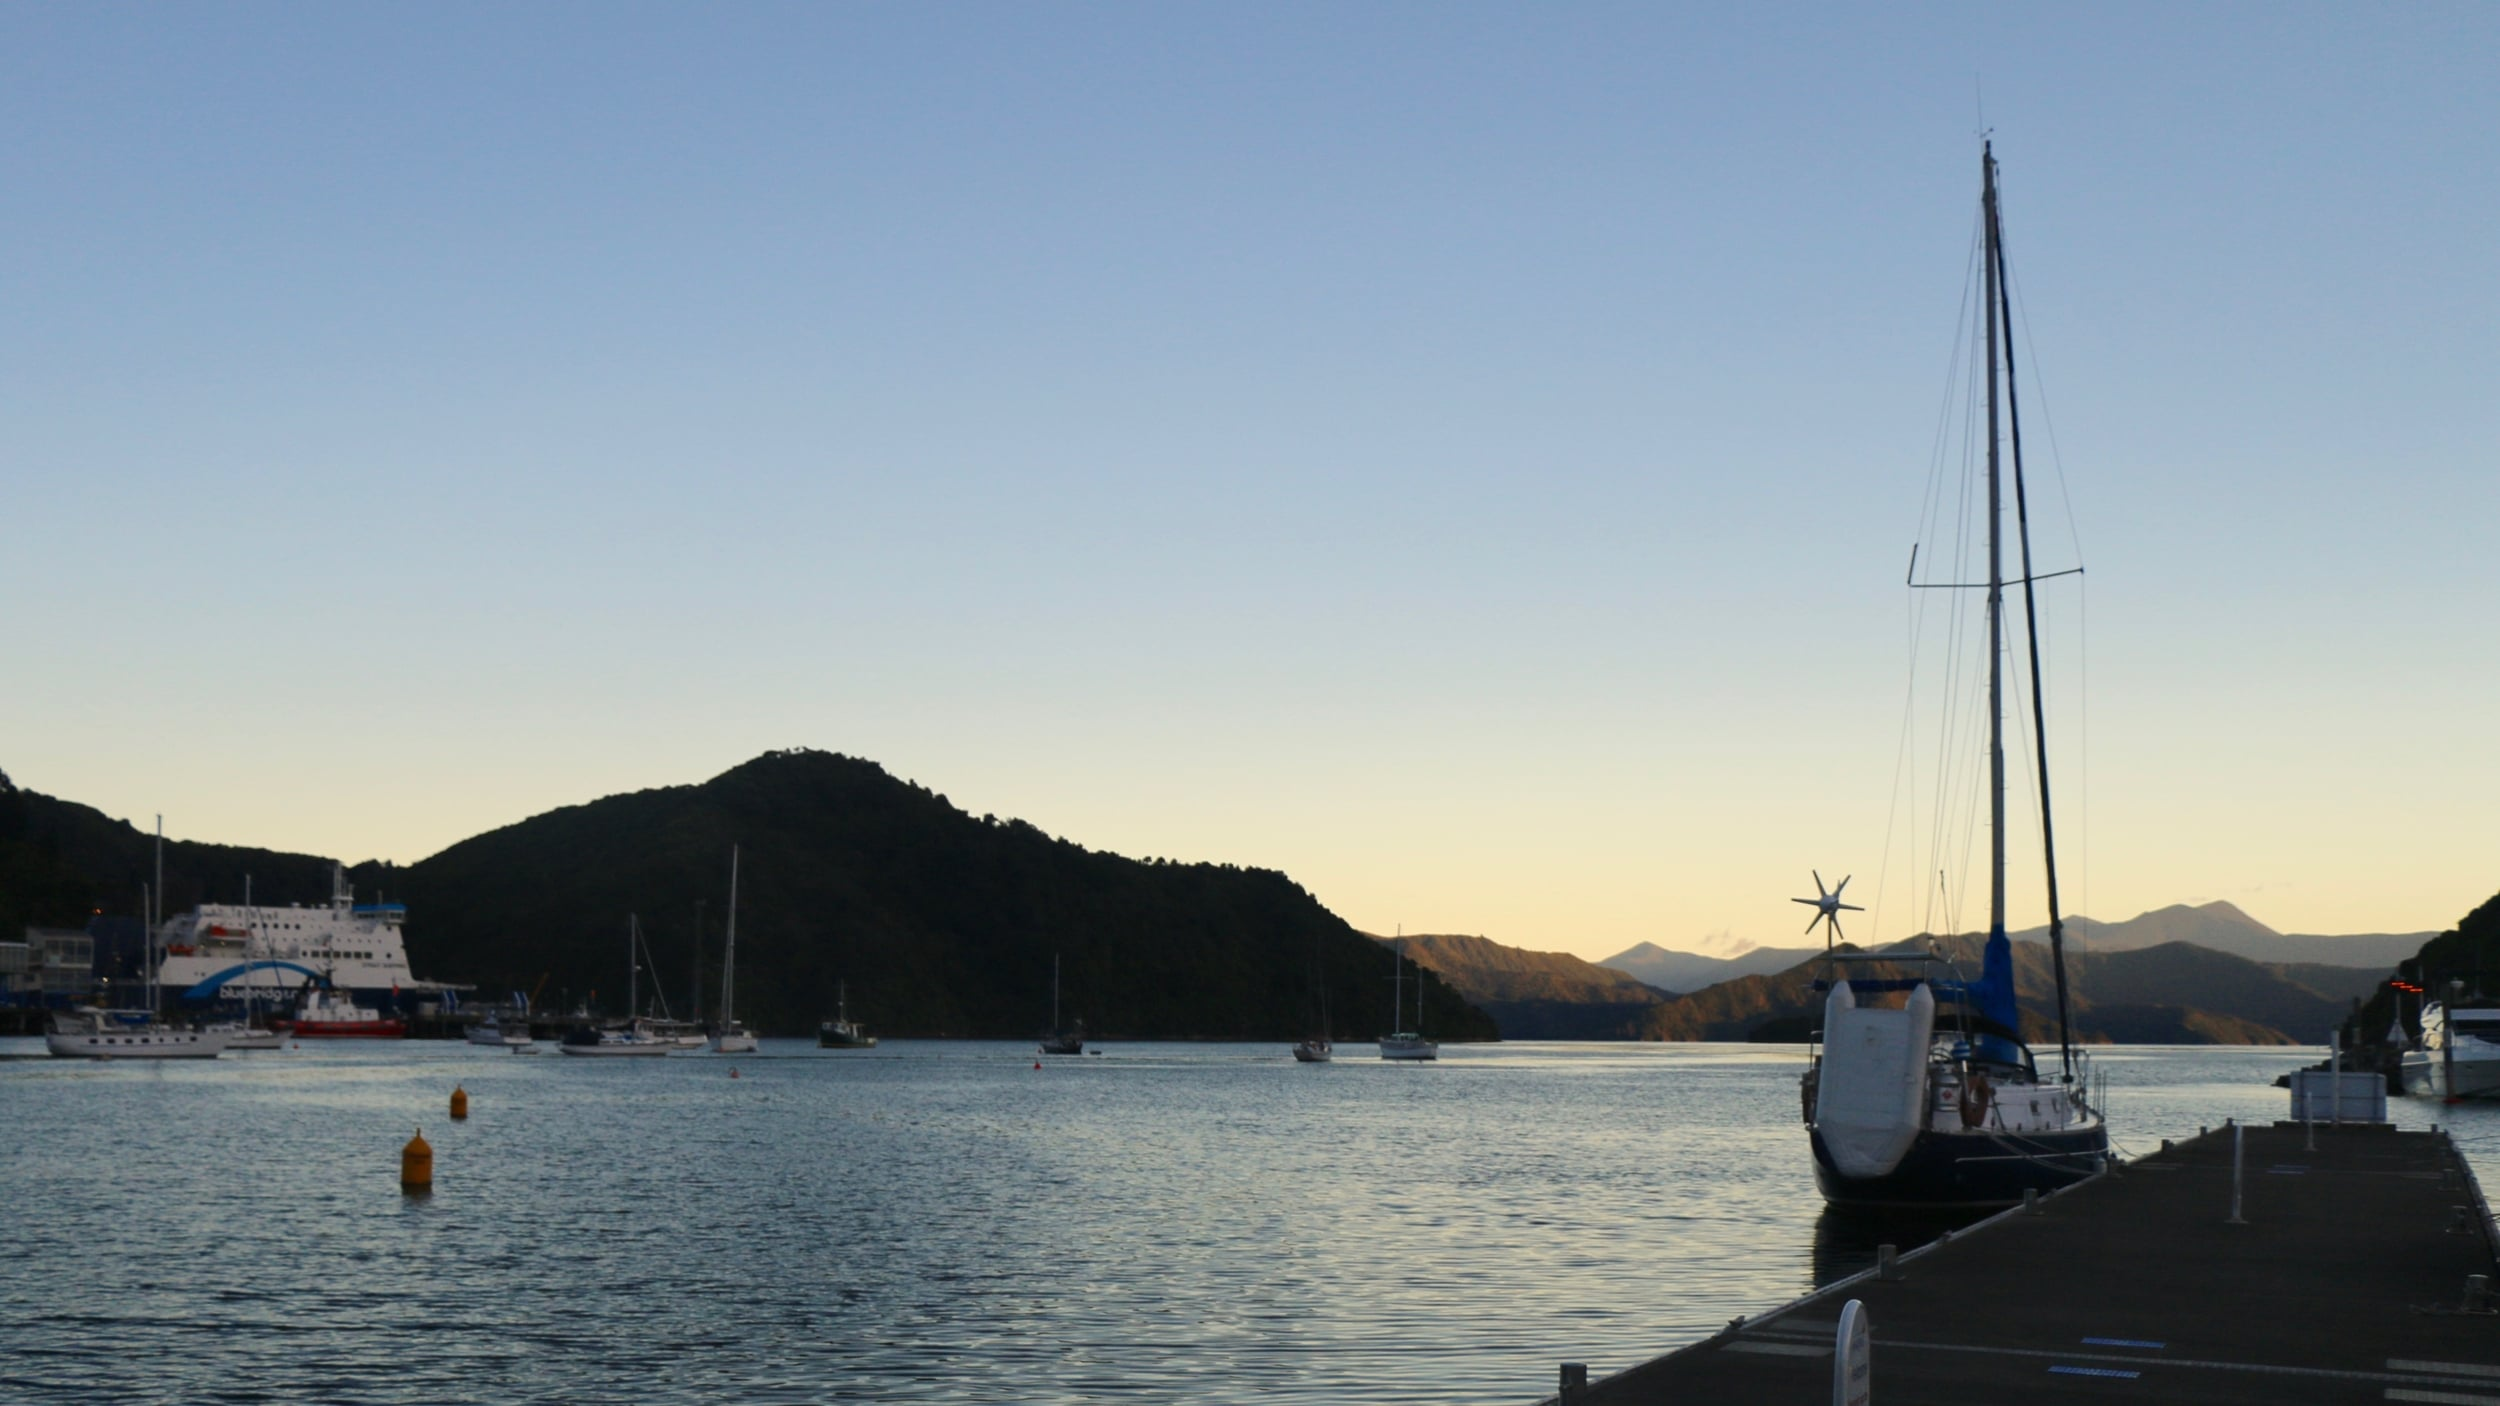 Picton harbour, arrival of the ferry from Wellington